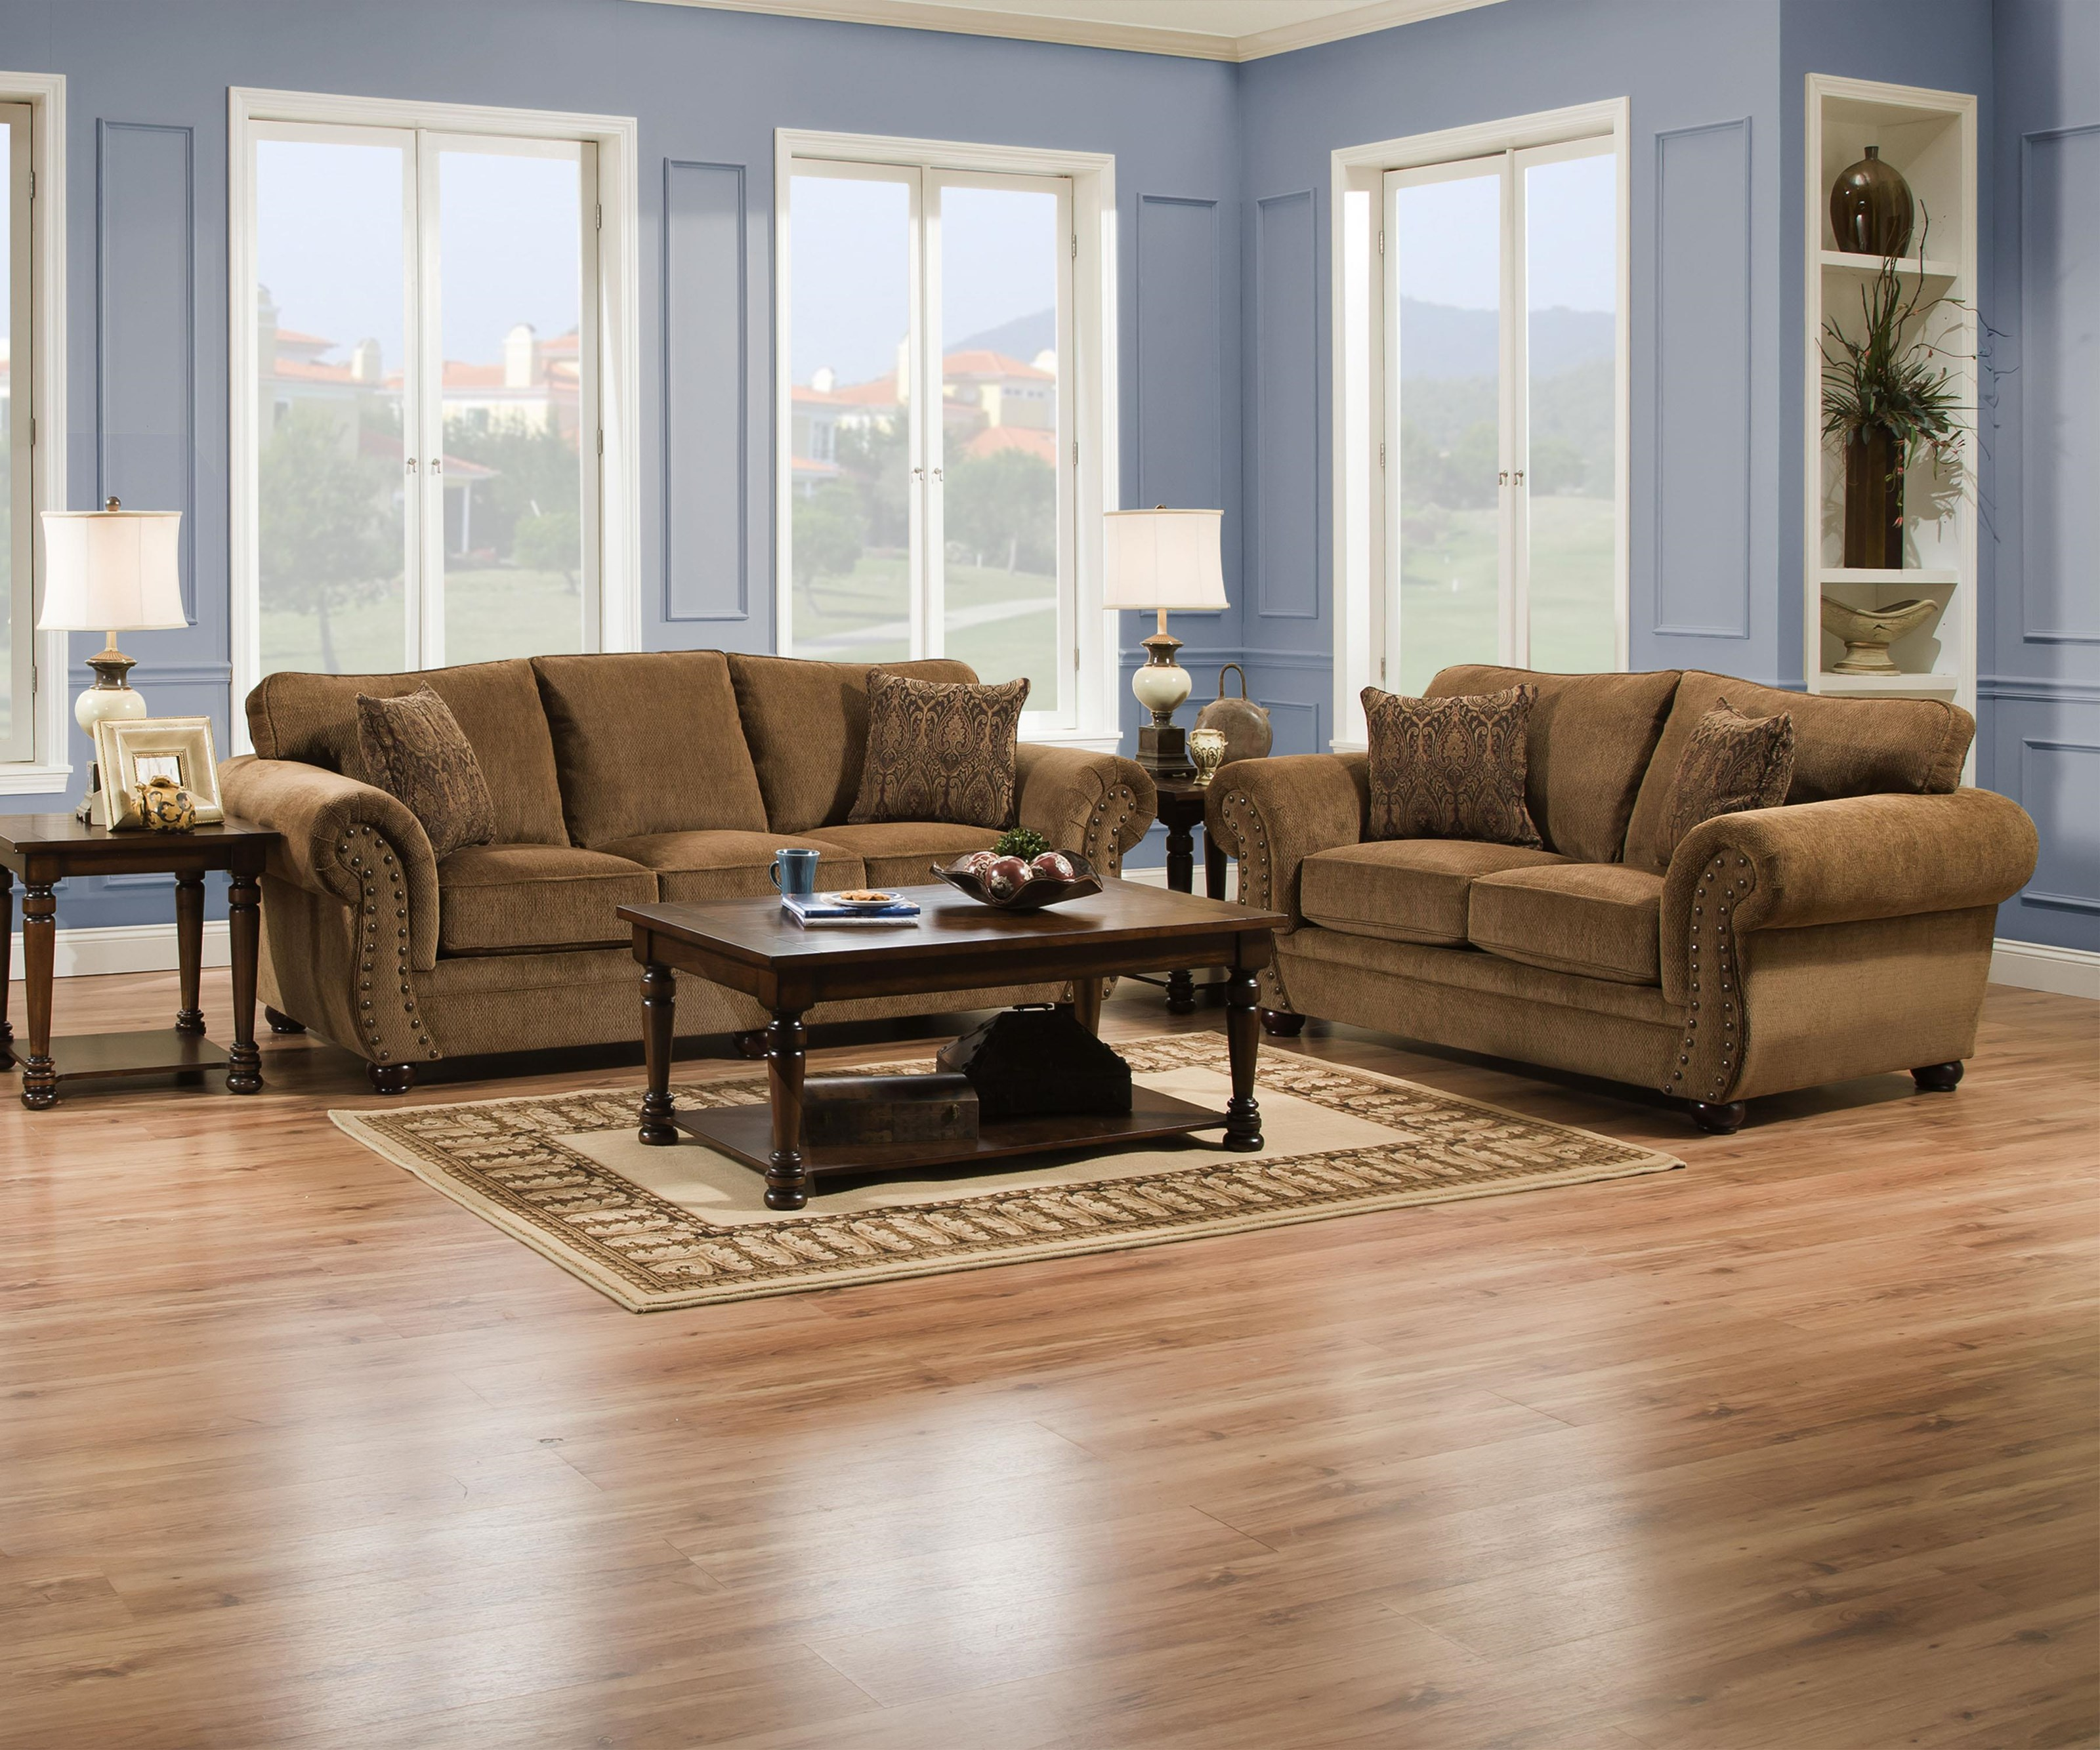 Simmons Upholstery 4276 Traditional Sofa and Loveseat - Item Number: 4276 2 Piece Group